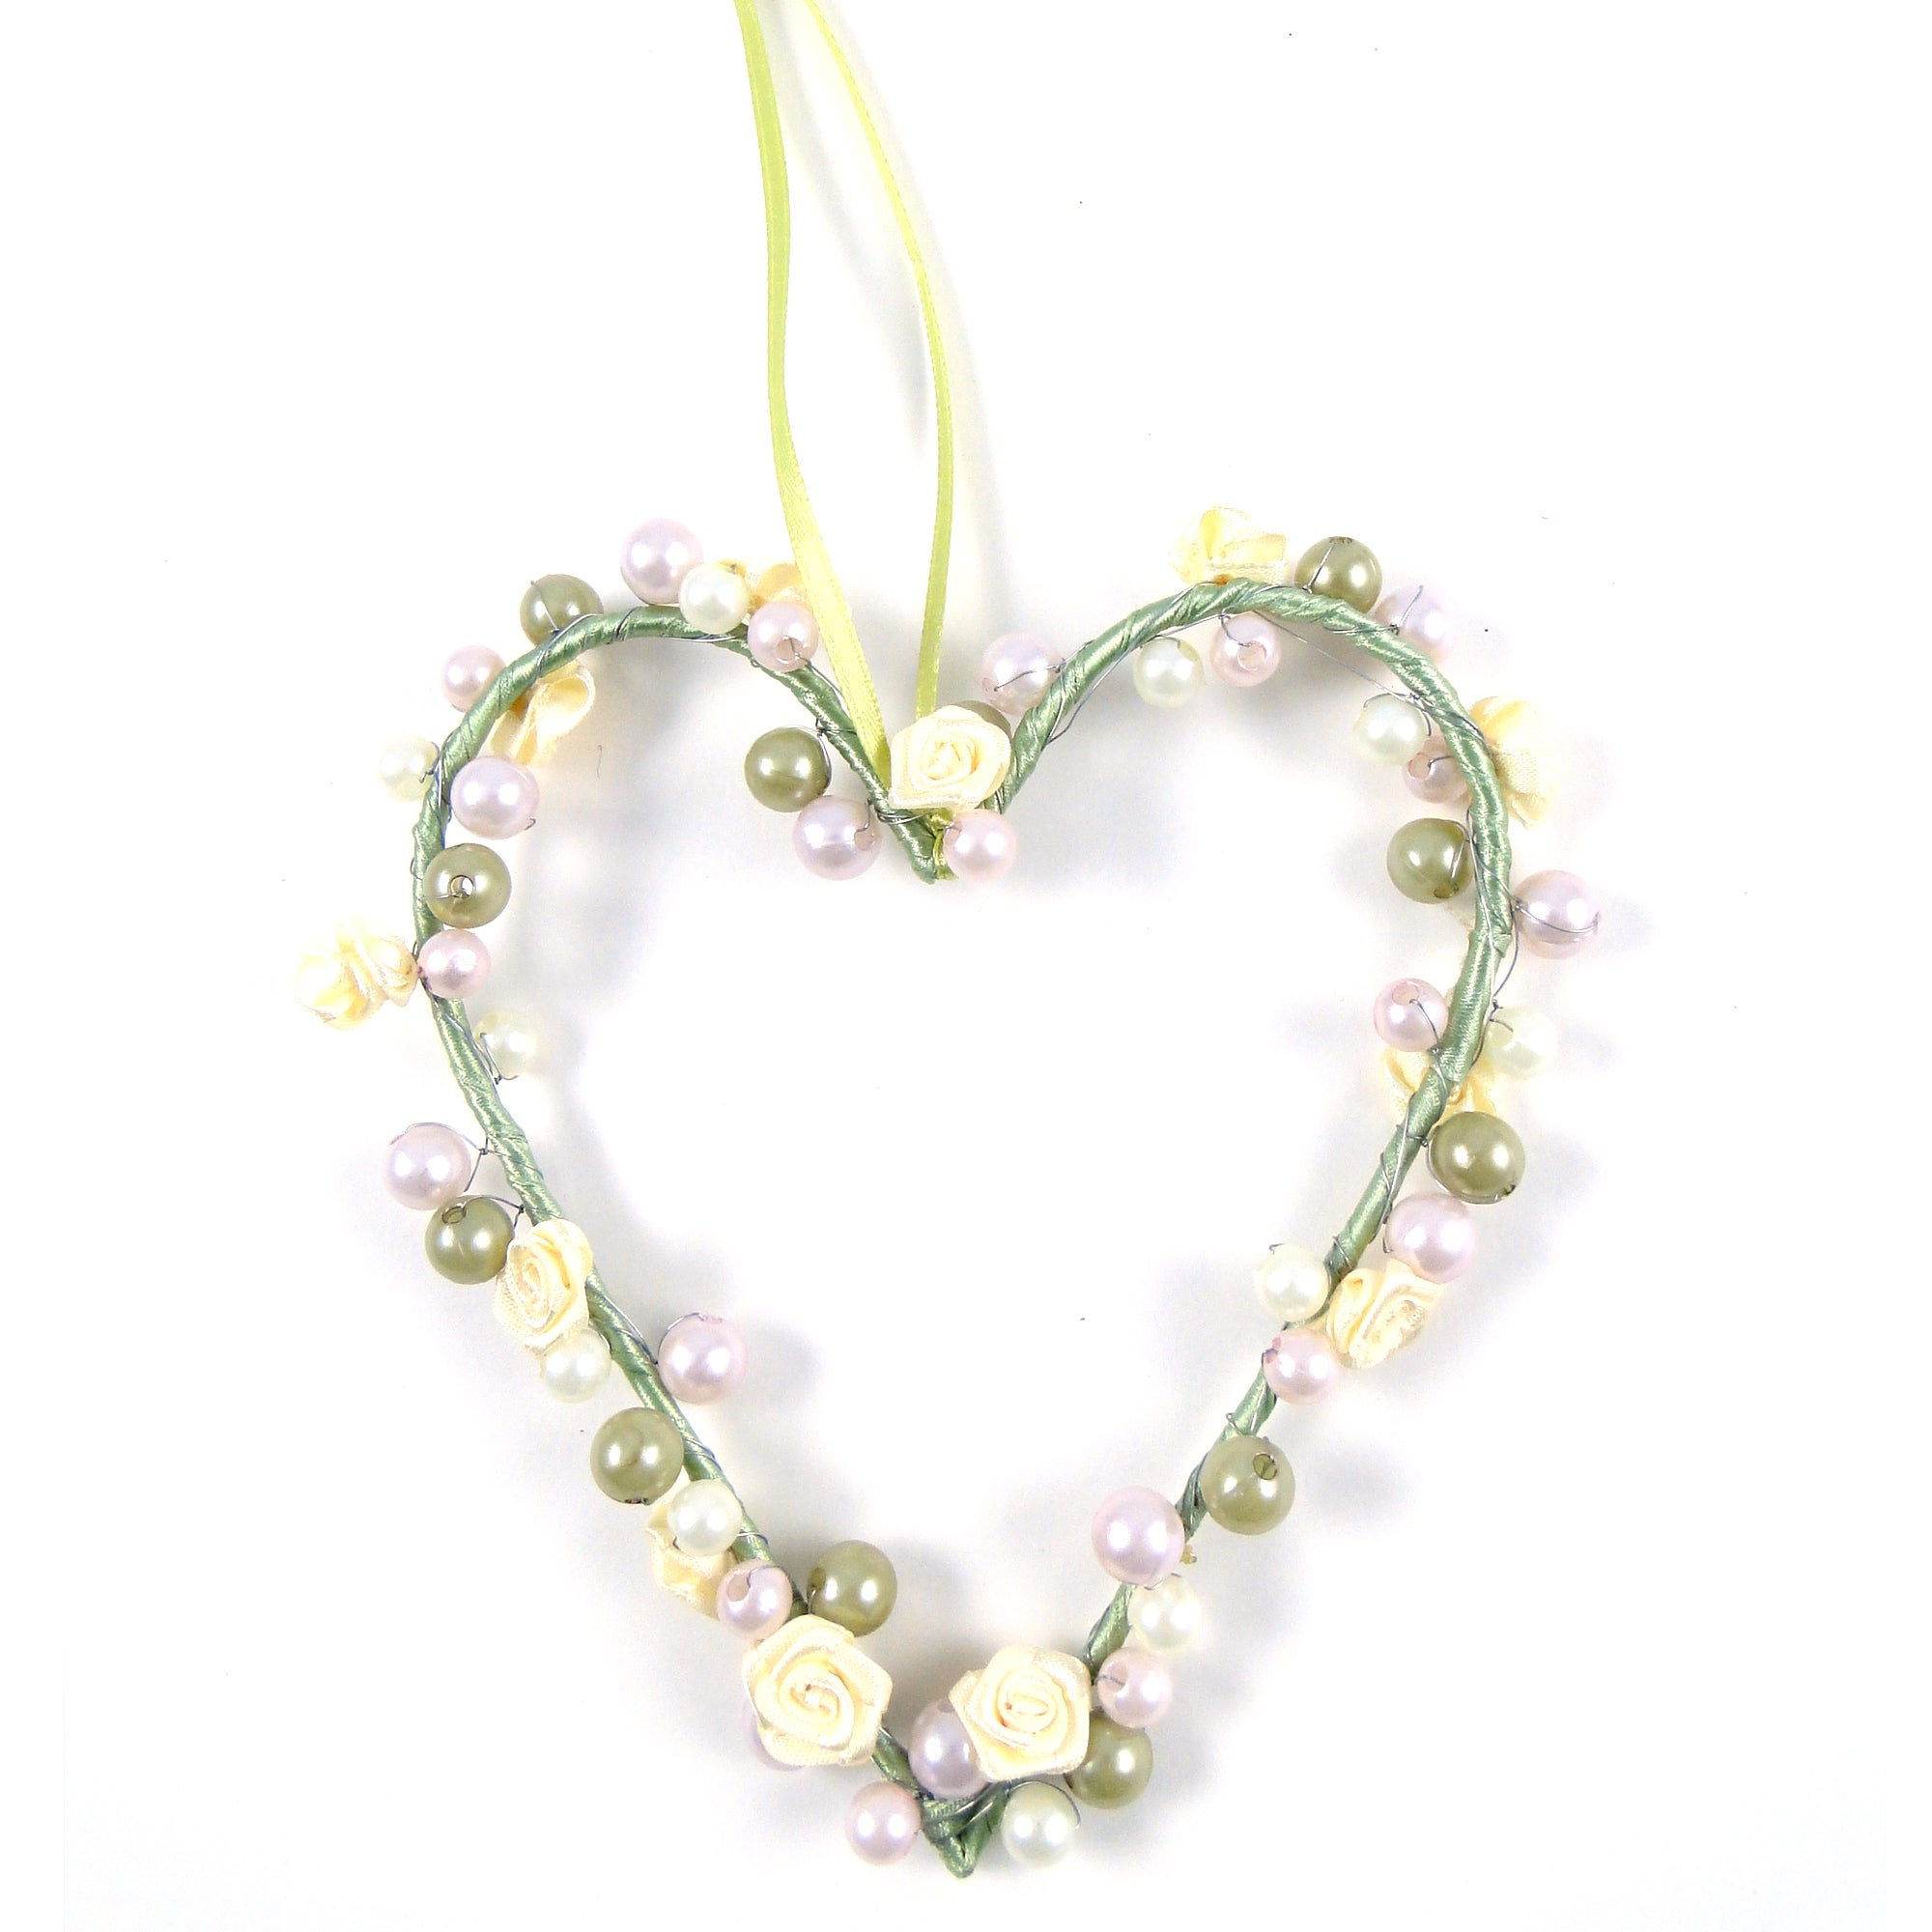 Hanging Heart with Rose and Bead Trim